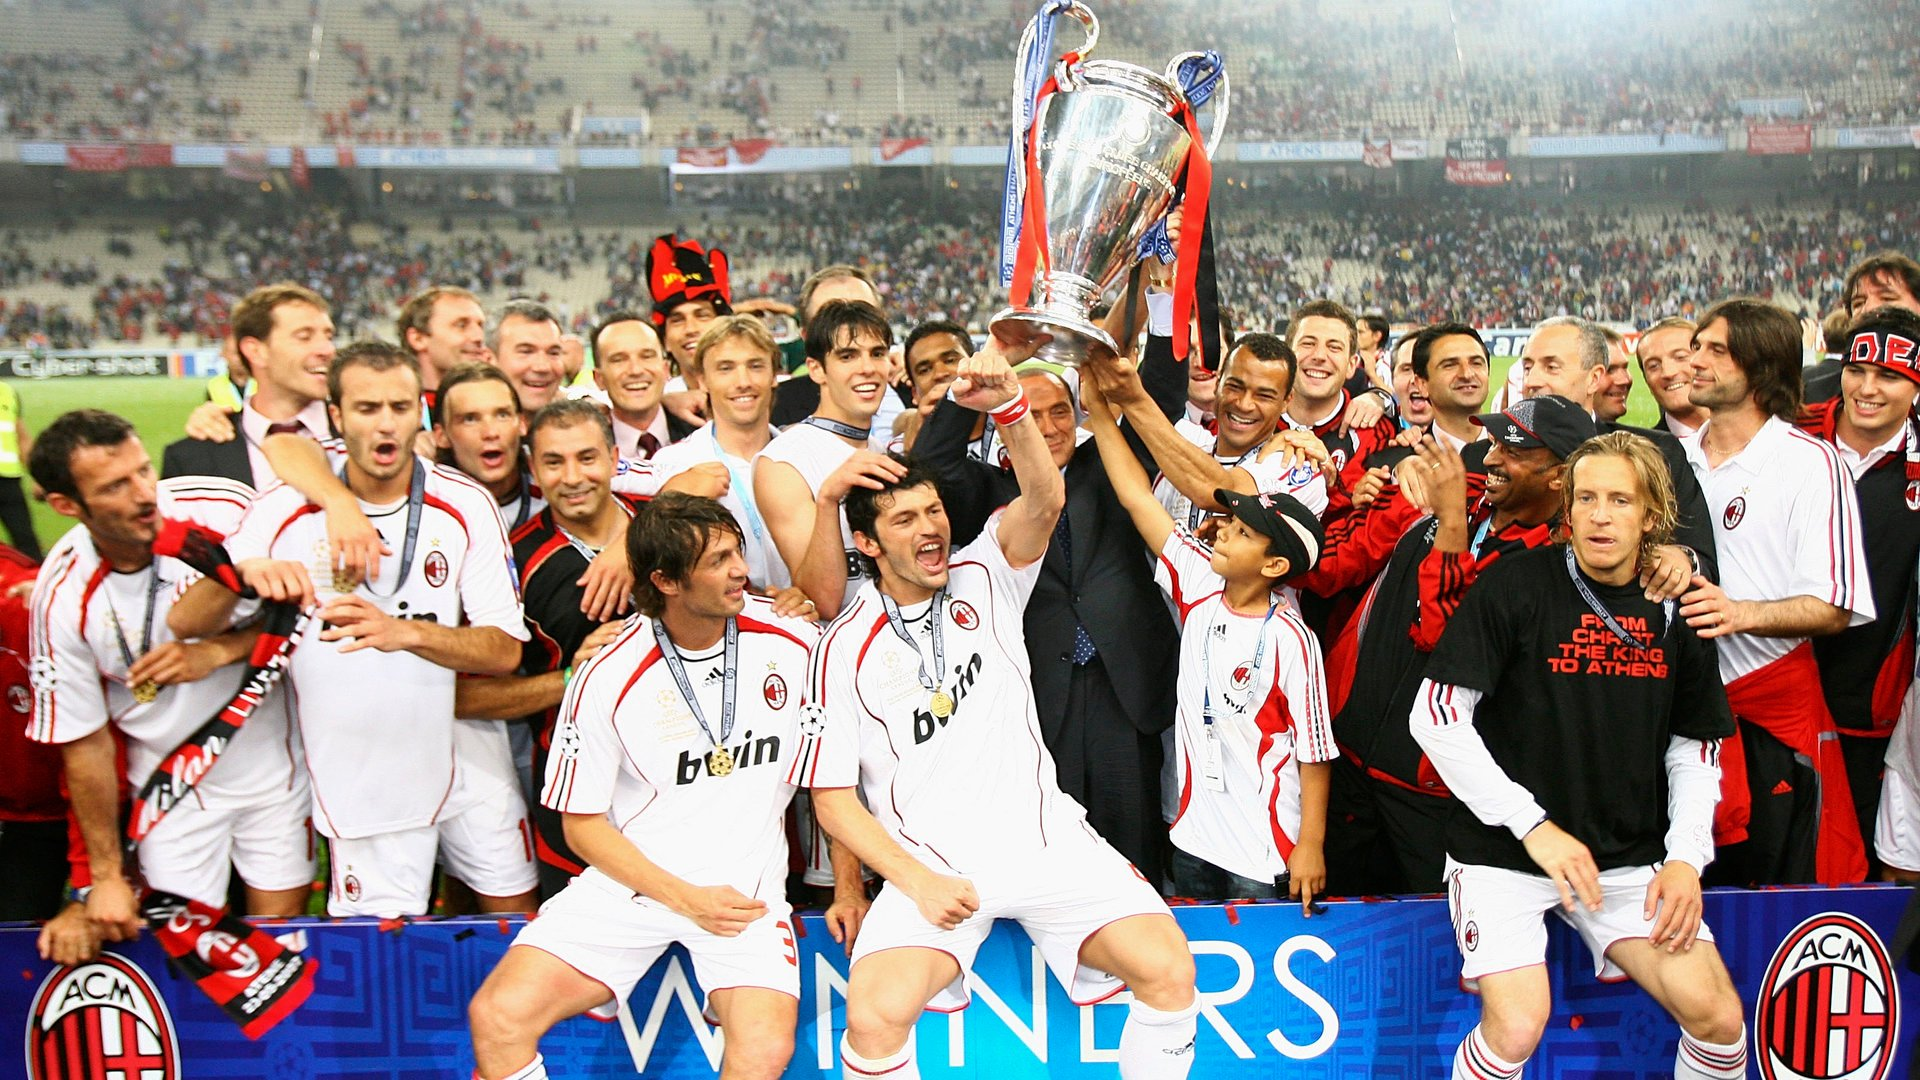 UEFA Champions League Final: Liverpool v AC Milan